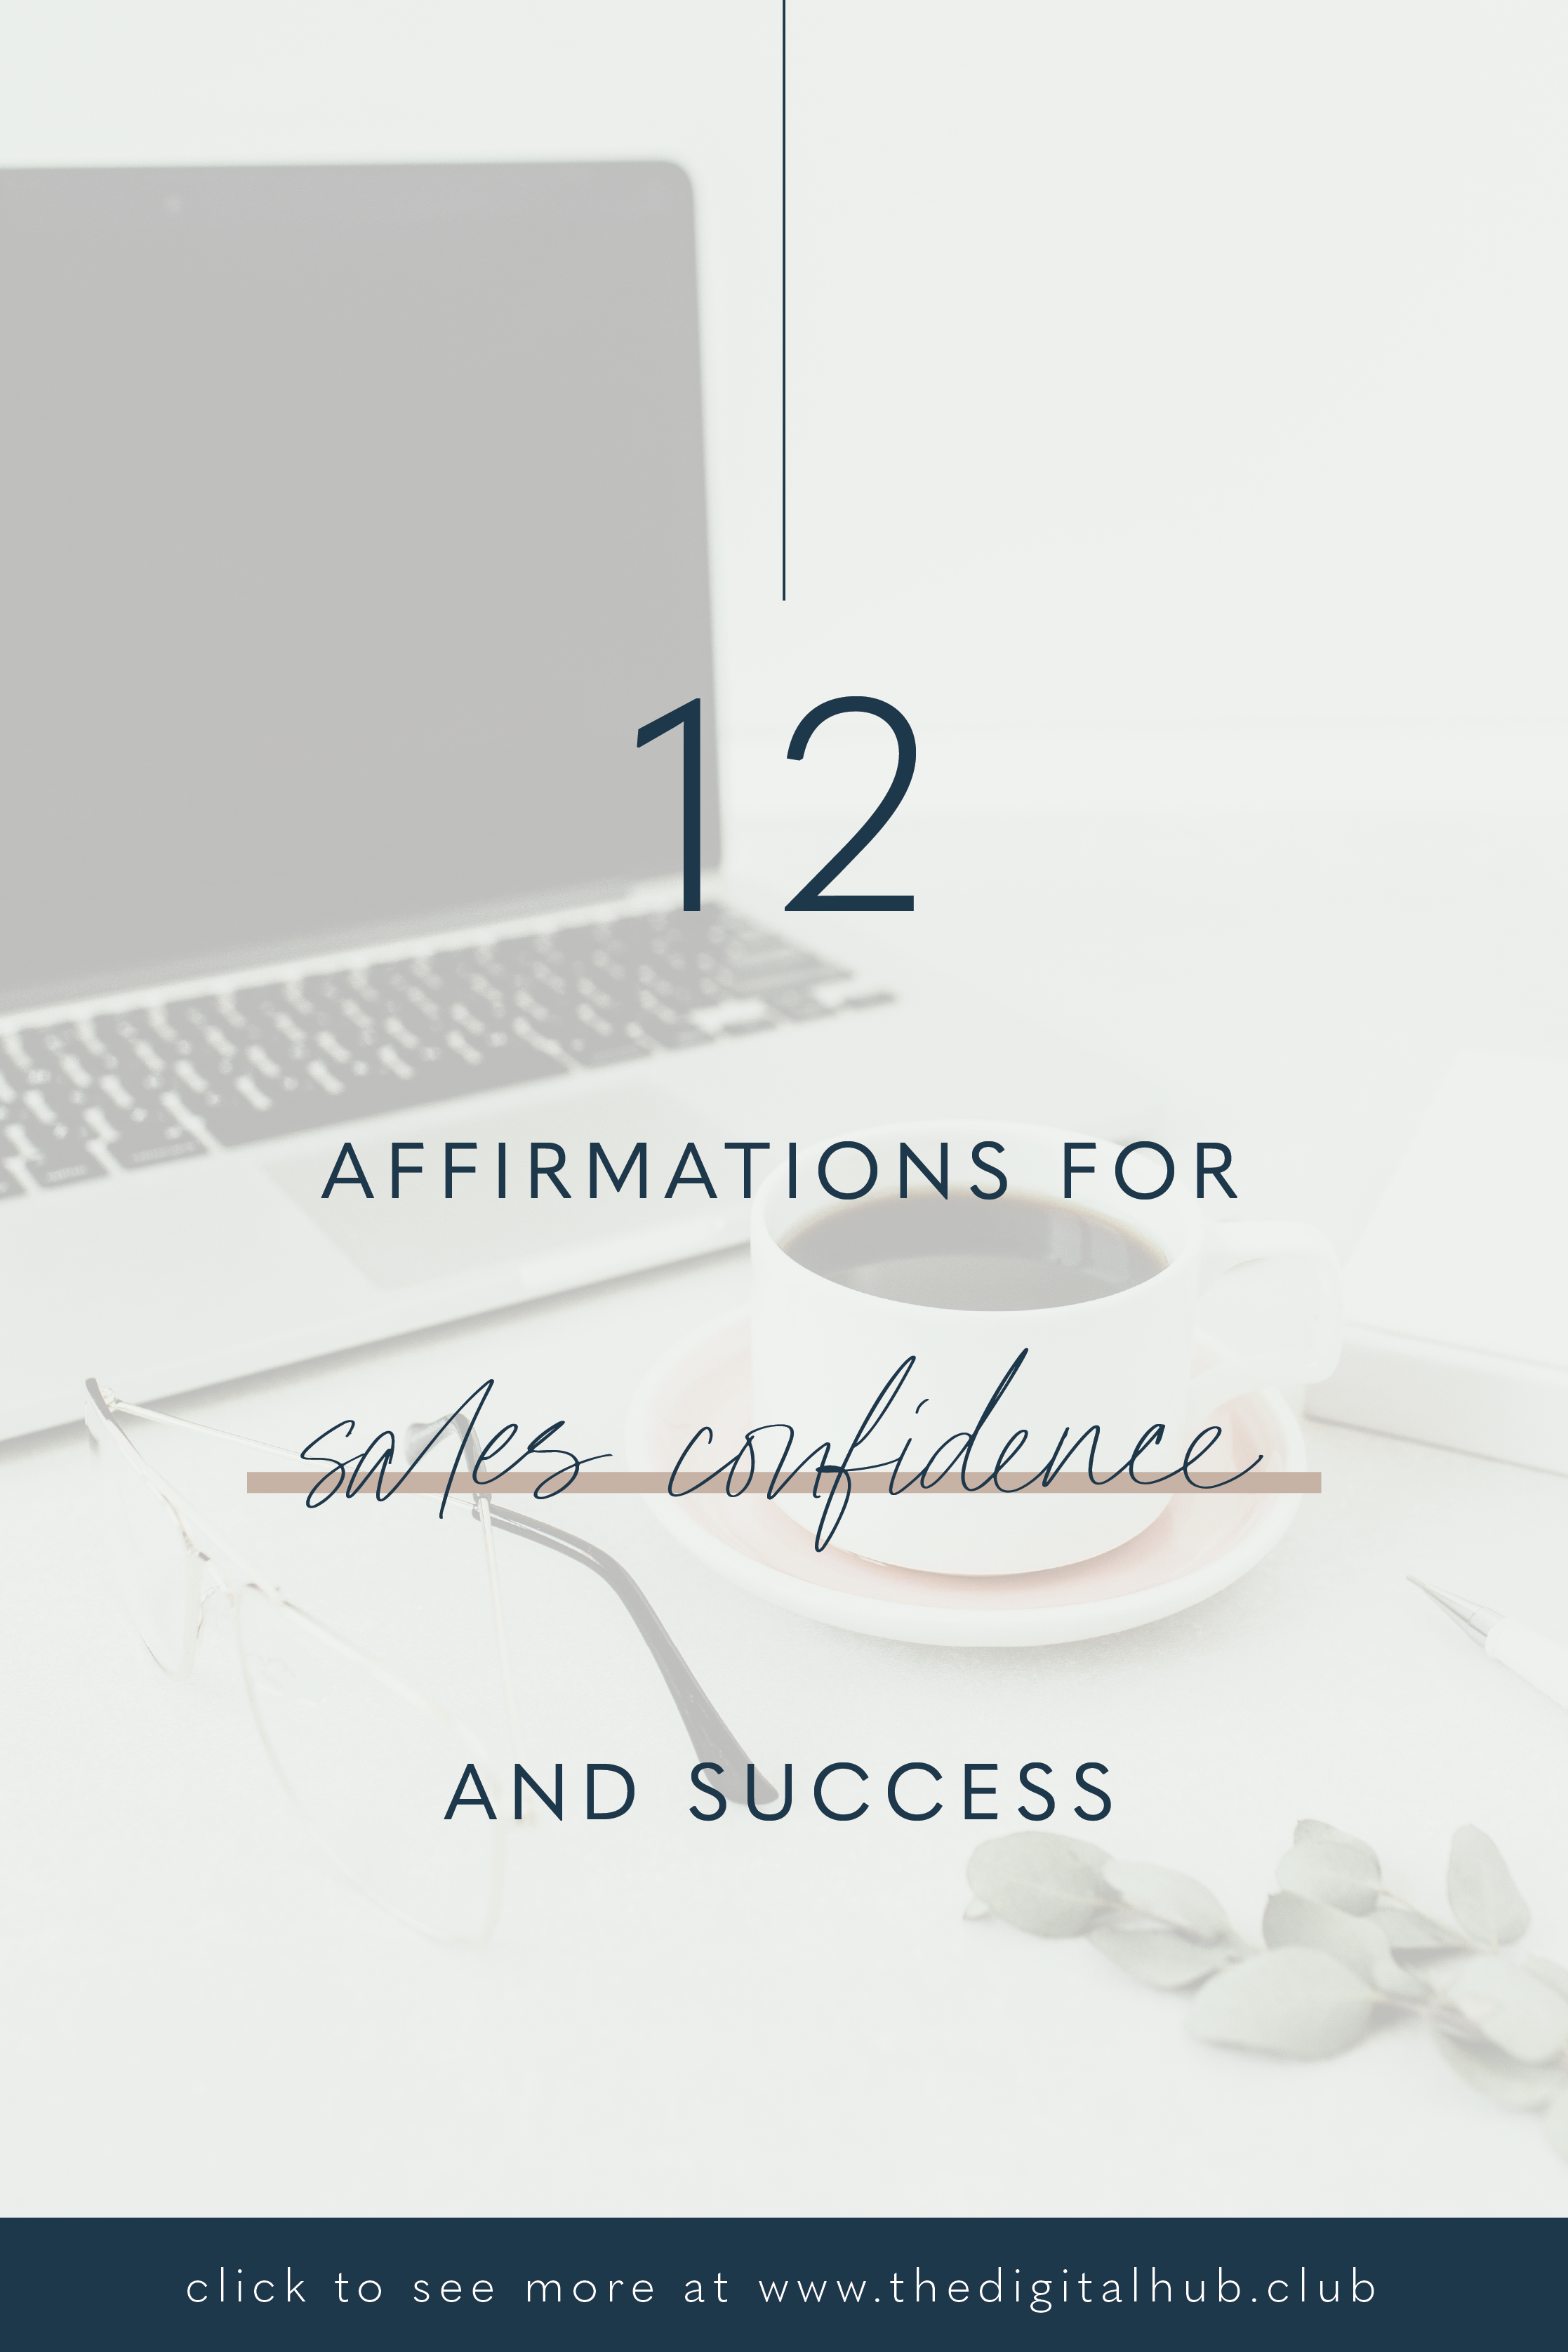 12-Affirmations-For-Sales-Confidence.png